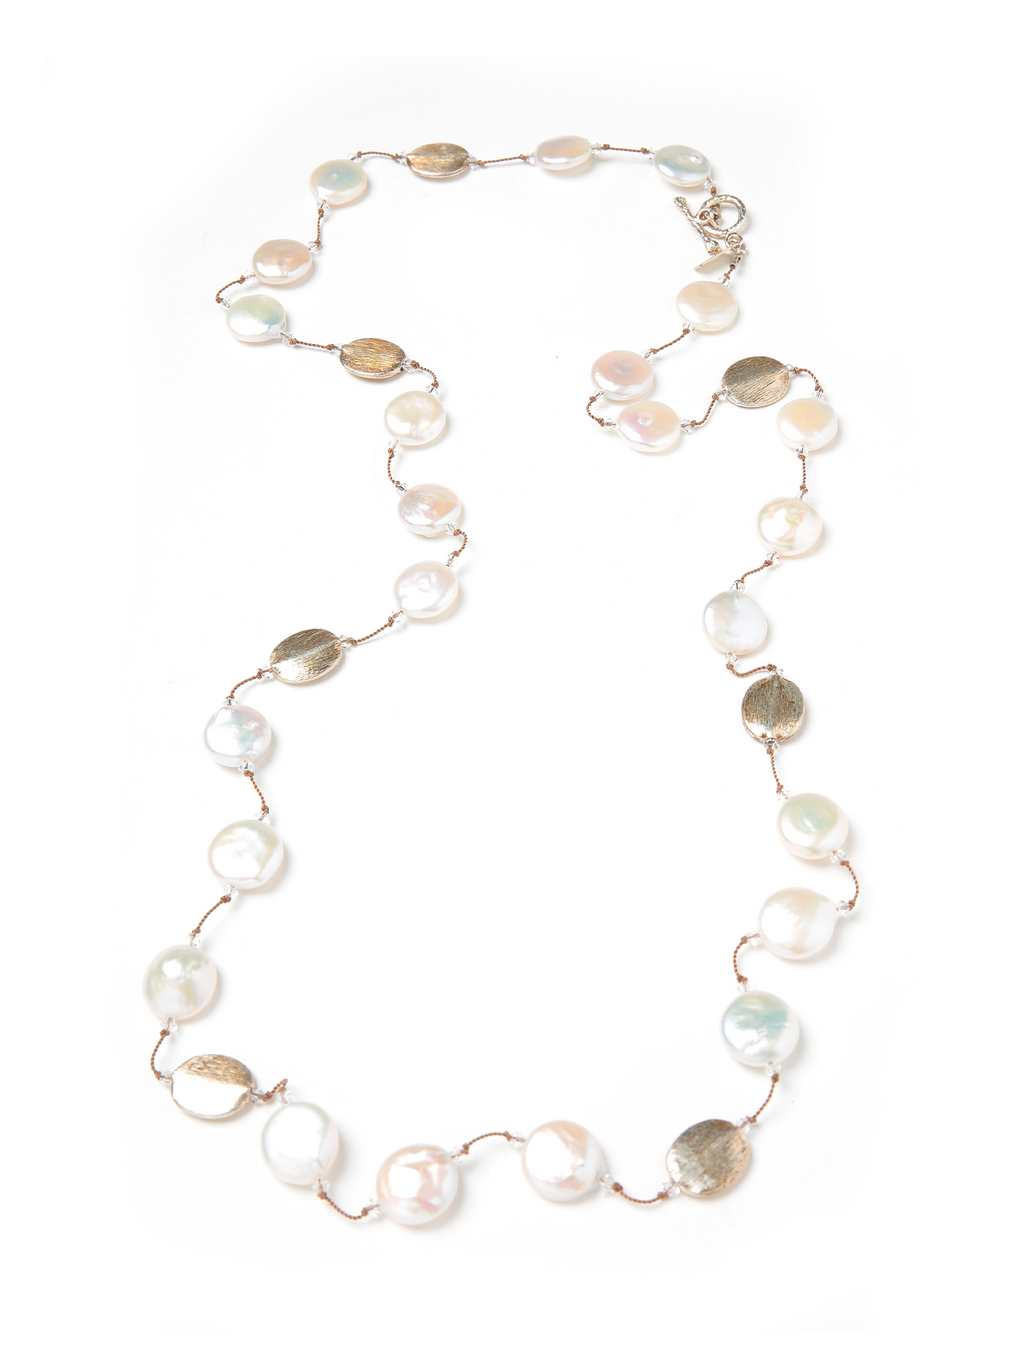 Margo Morrison White Coin Pearl Long Necklace with Silver Beads